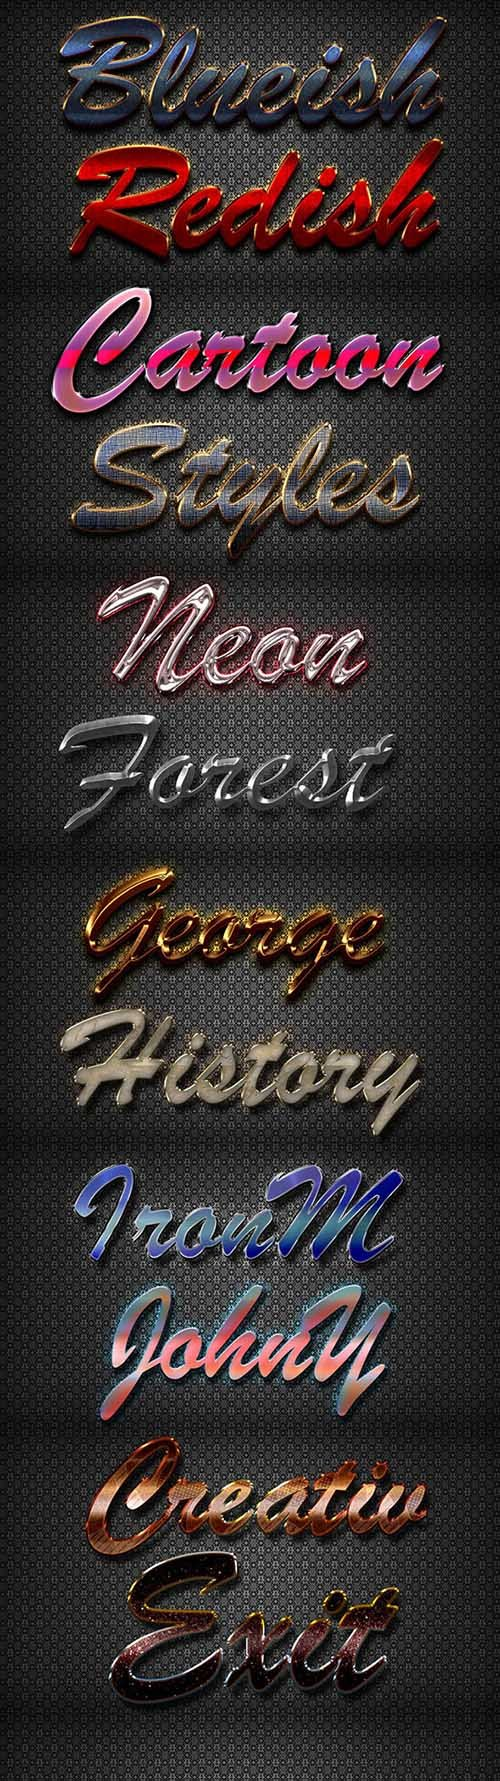 GraphicRiver - 10 3D Text Styles D_44 21143314